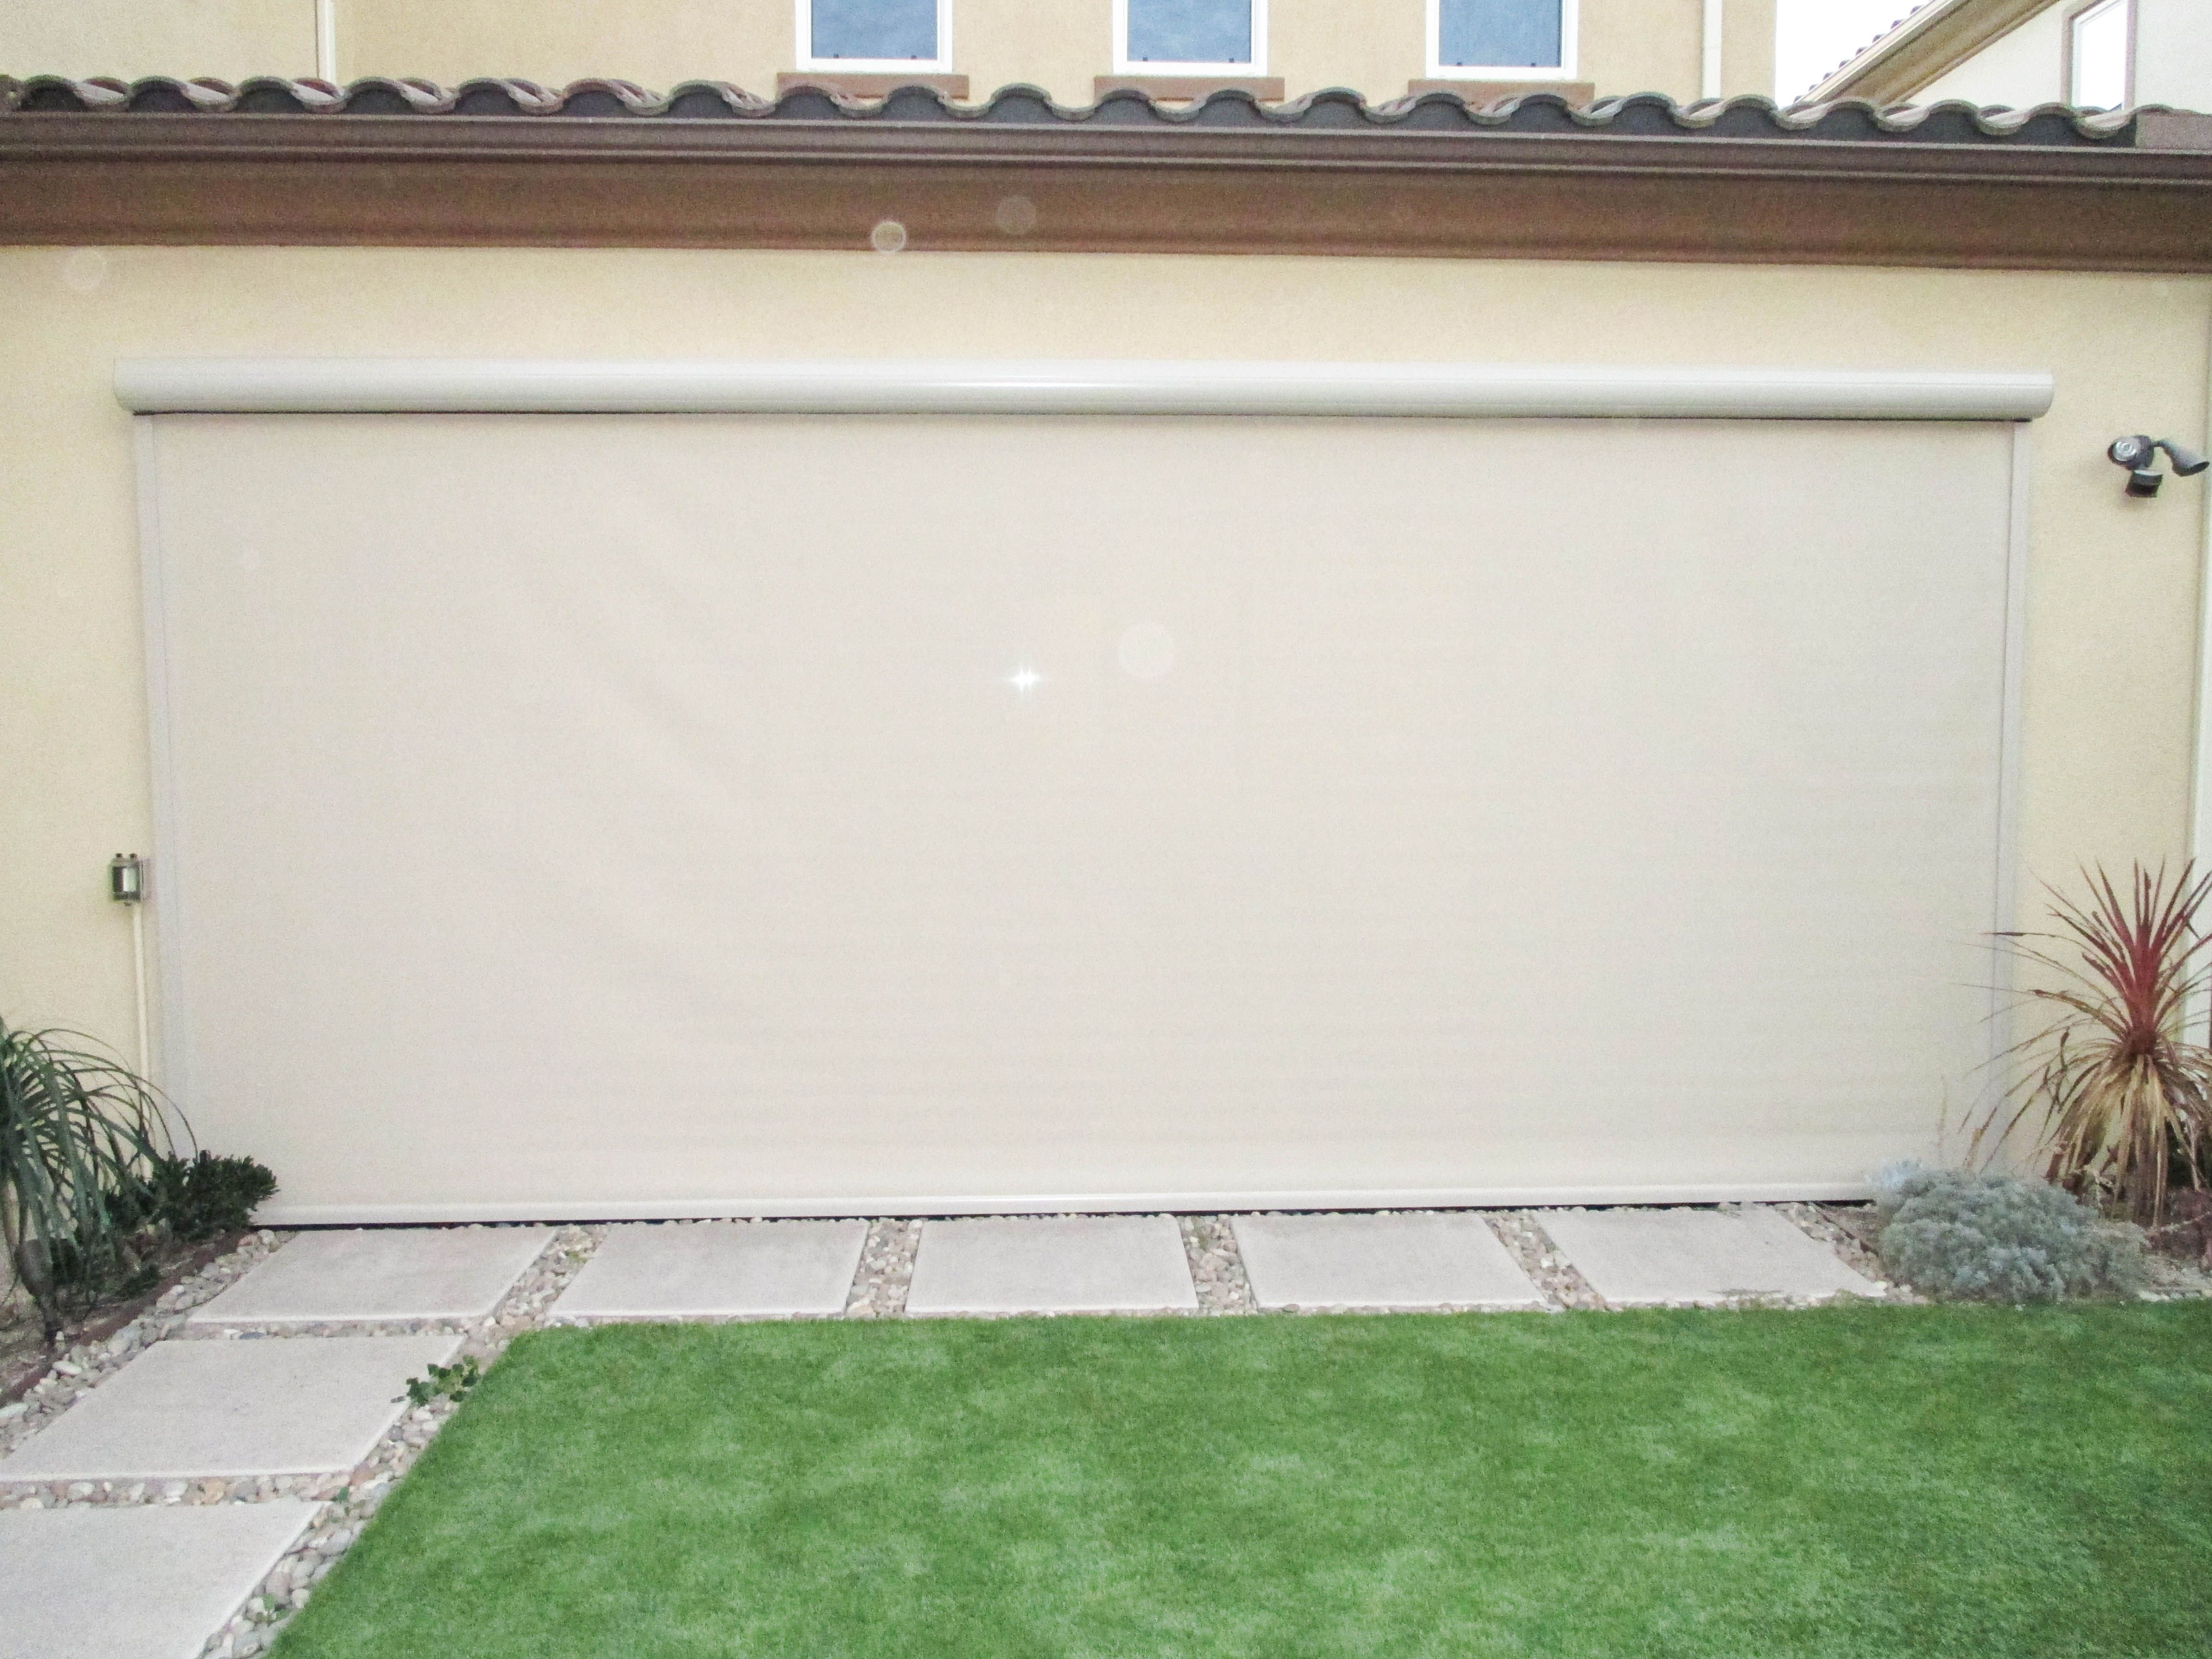 Our Team Installed This Motorized Bug And Privacy Screen On A